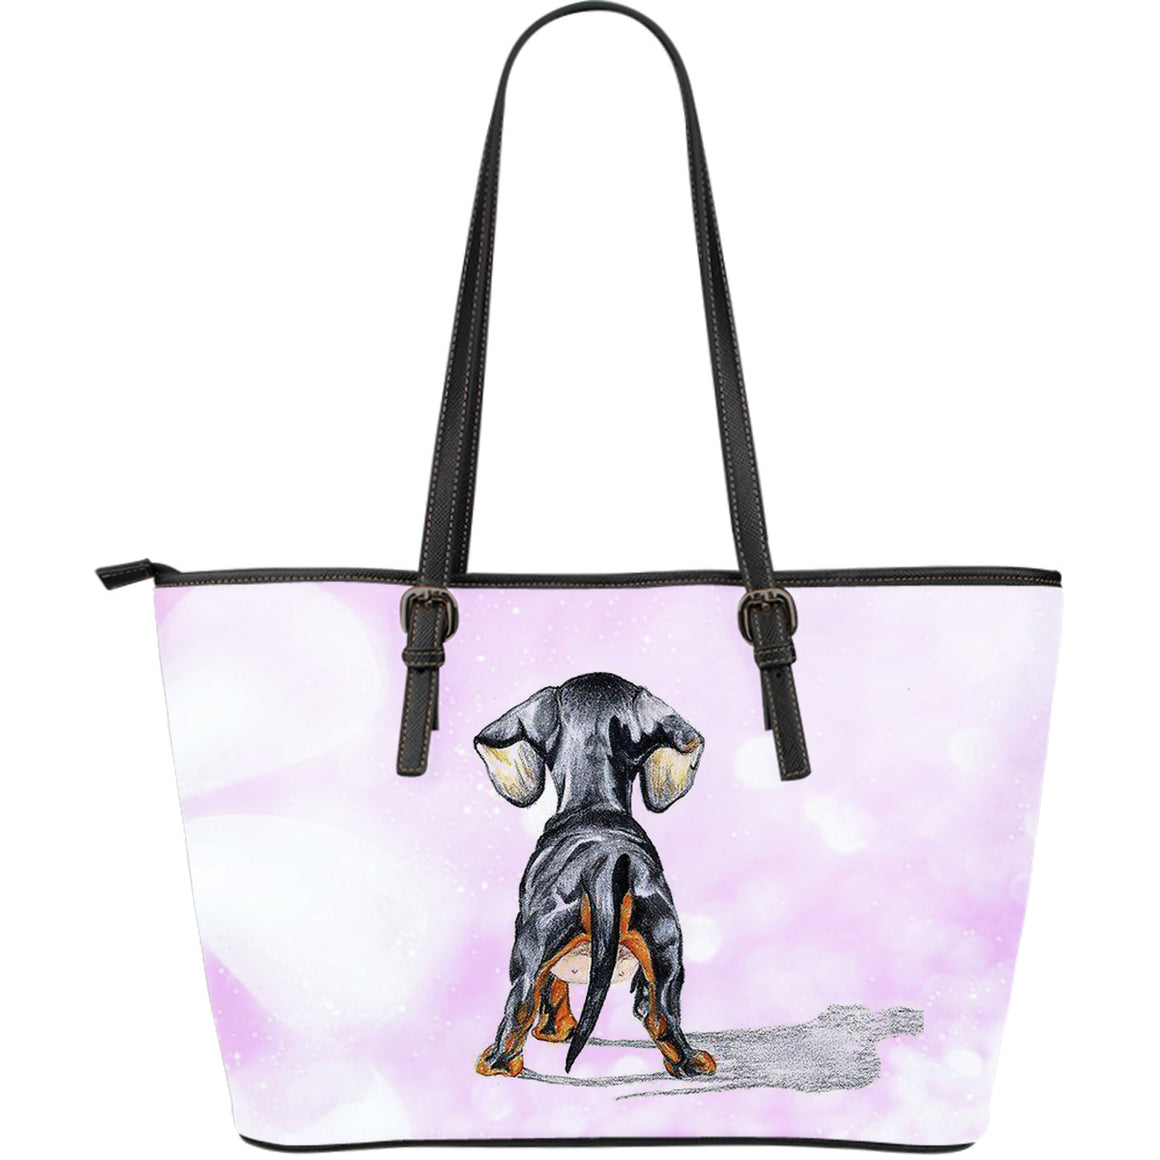 Dachshund Large Leather Tote